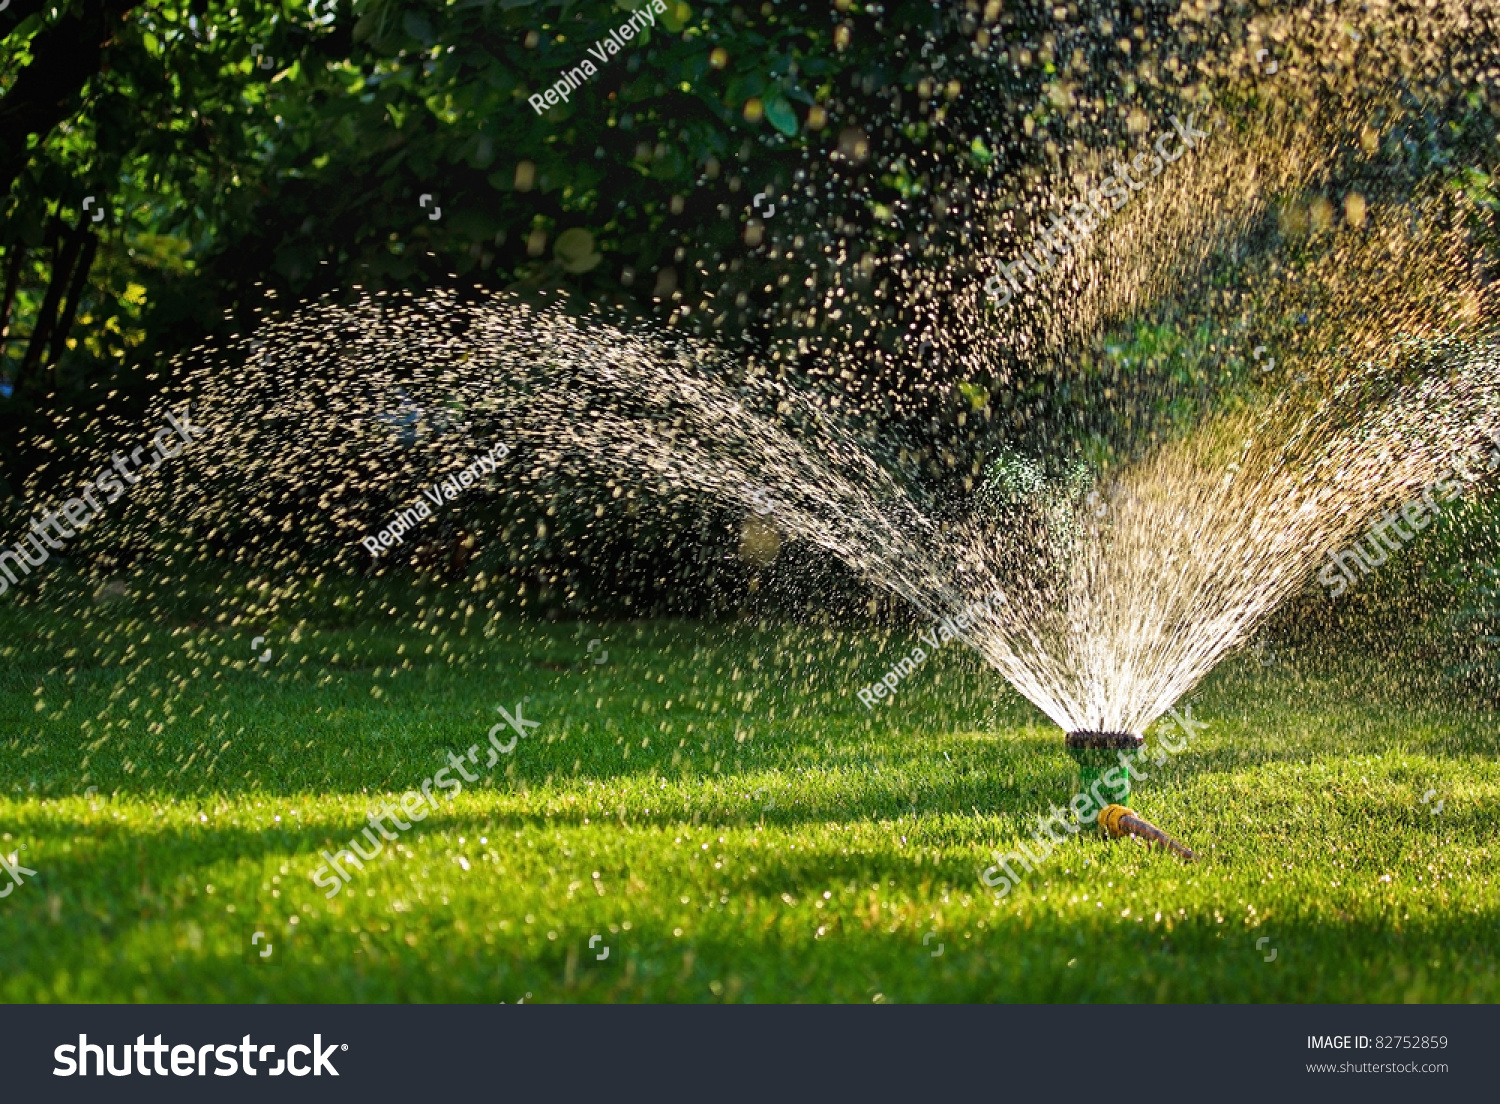 How To Design An Irrigation System At Home General Placement Of Irrigation  Components Simple Garden Sprinkler